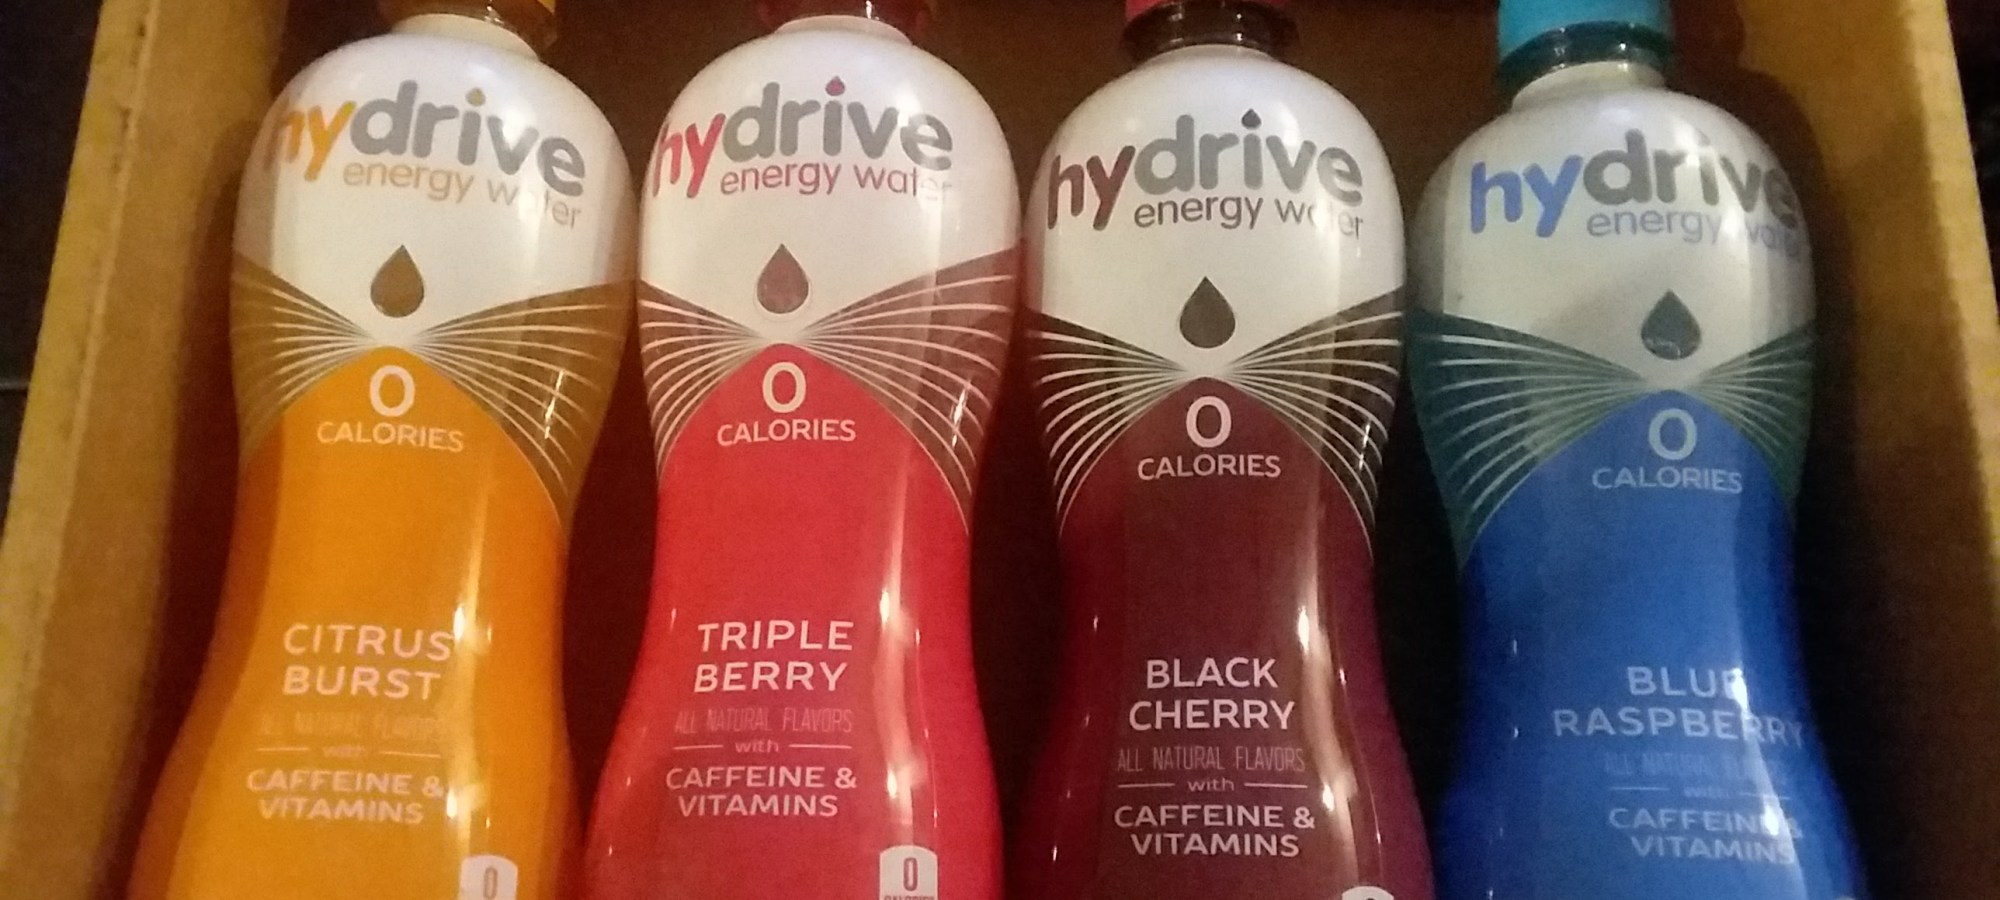 Hydrive Energy Water - Energy Drink of the Month Nov 2017